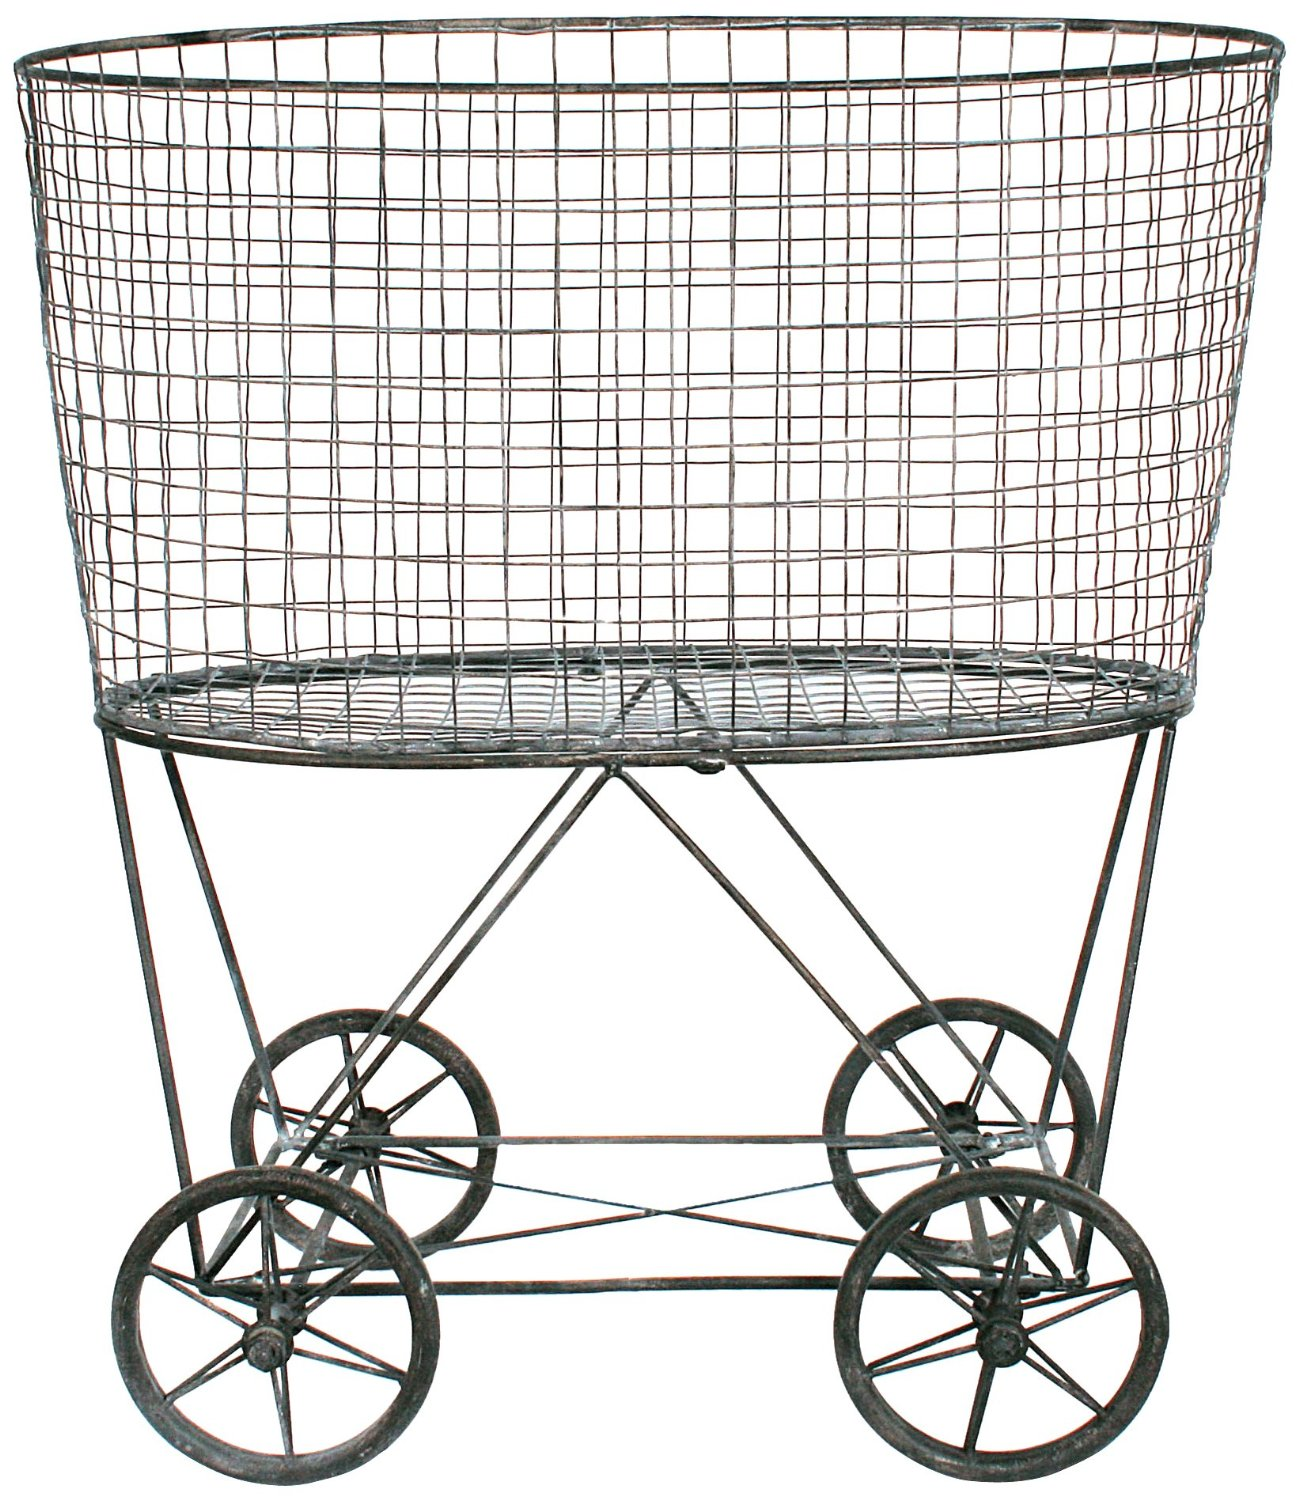 Steel Laundry Basket on Wheels Ideas